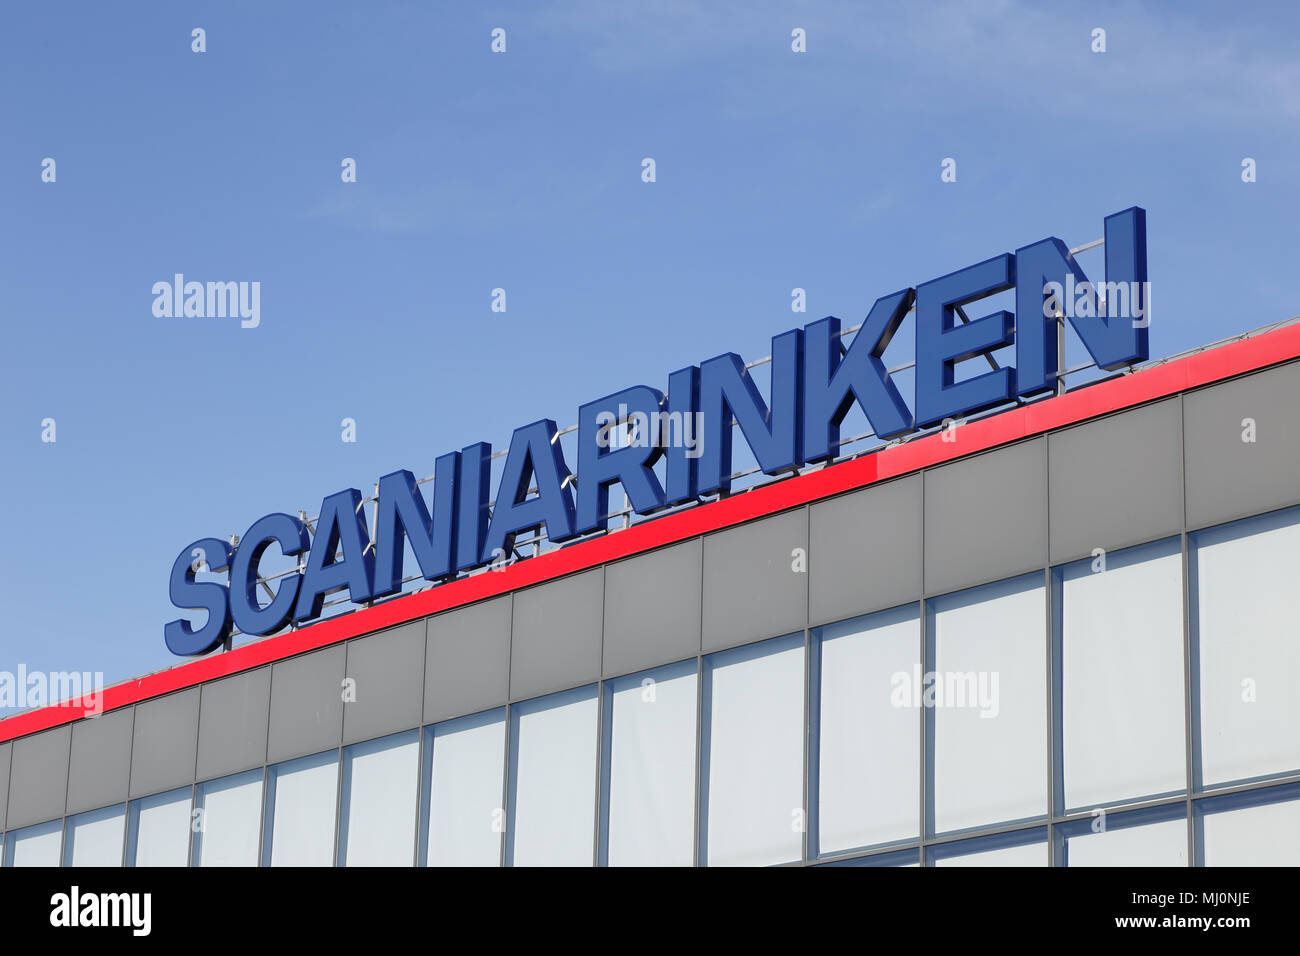 Sodertalje, Sweden - May 7, 2016: The sign on the ice hockey arena Scaniarinken. - Stock Image